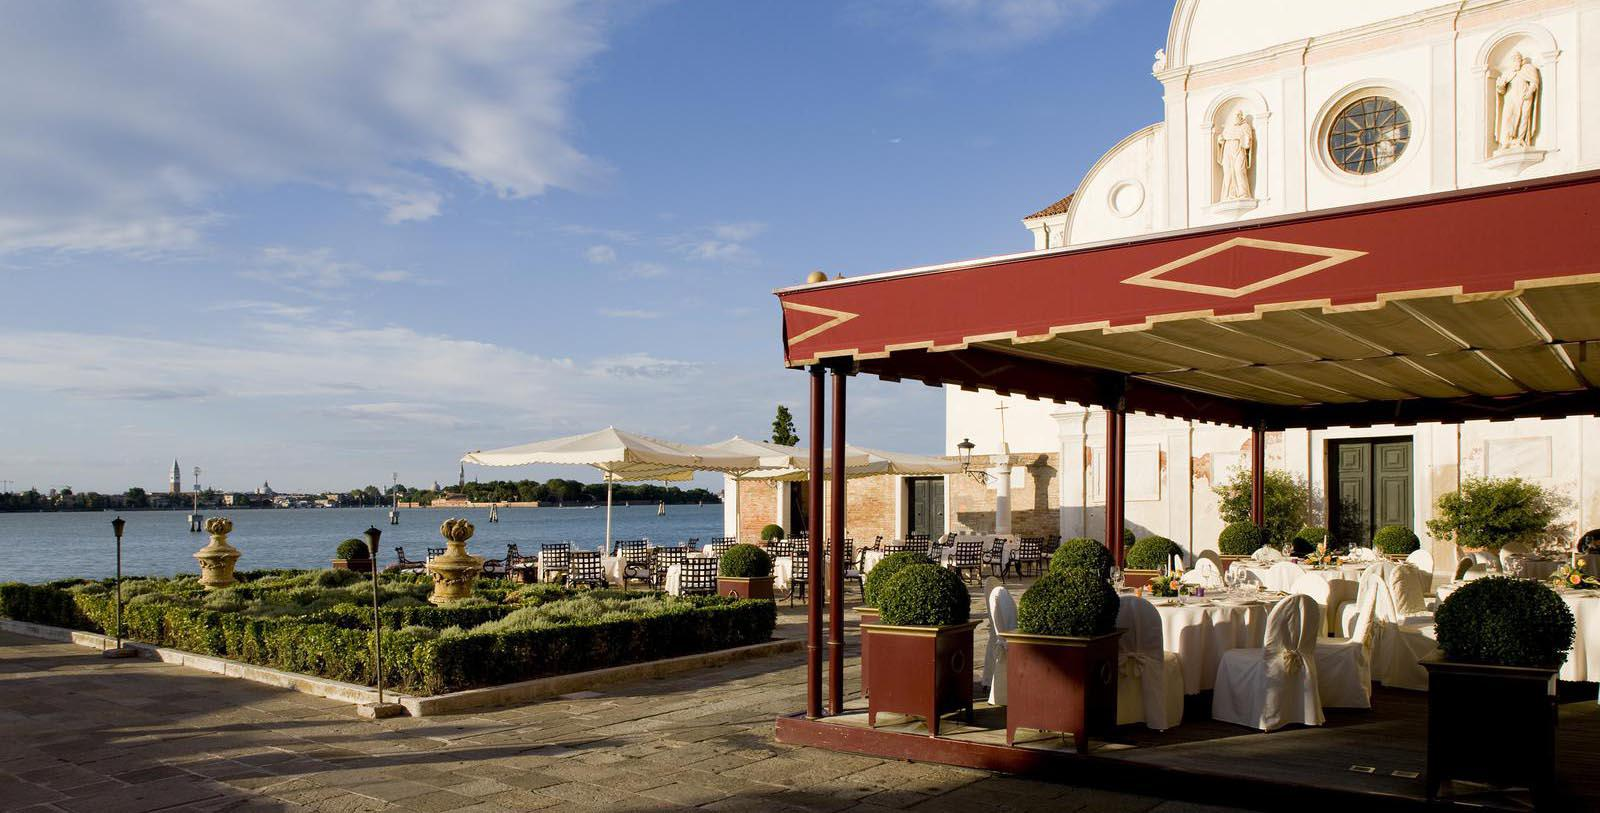 Image of Outdoor Dining Terrace at San Clemente Palace Kempinski, 1131, Member of Historic Hotels Worldwide, in Venice, Italy, Experience